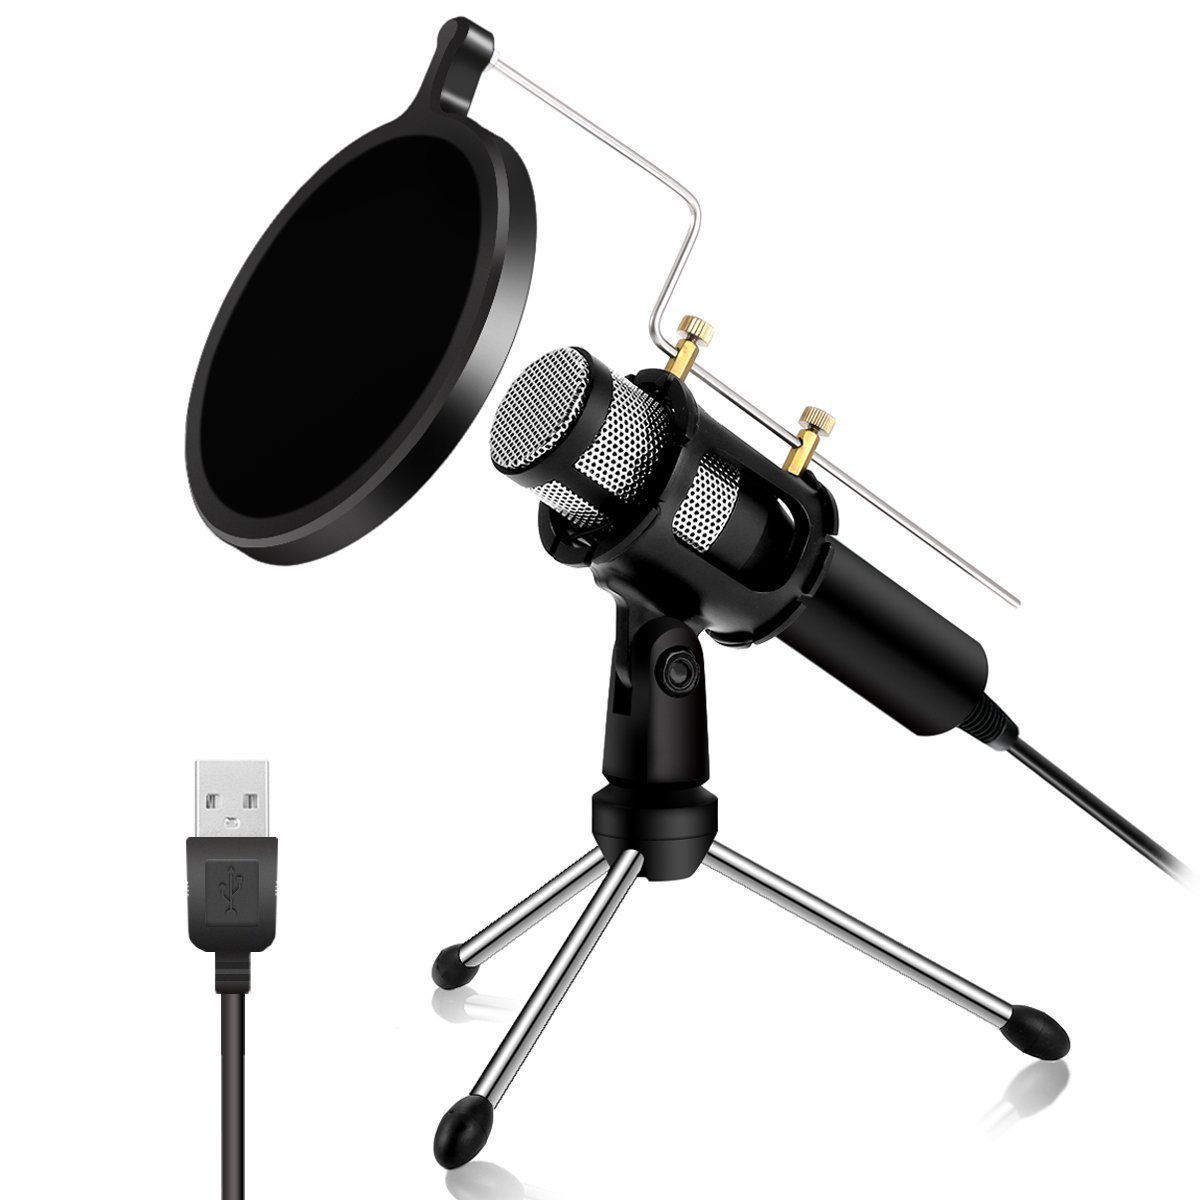 Condenser Microphone NASUM Portable Mini Recording Microphone with 3.5mm Plug &Play Home Studio Microphones for PC Online Chat,Voice Recording,Cellphones,Tablets,Laptops,PC,YouTube,Goo